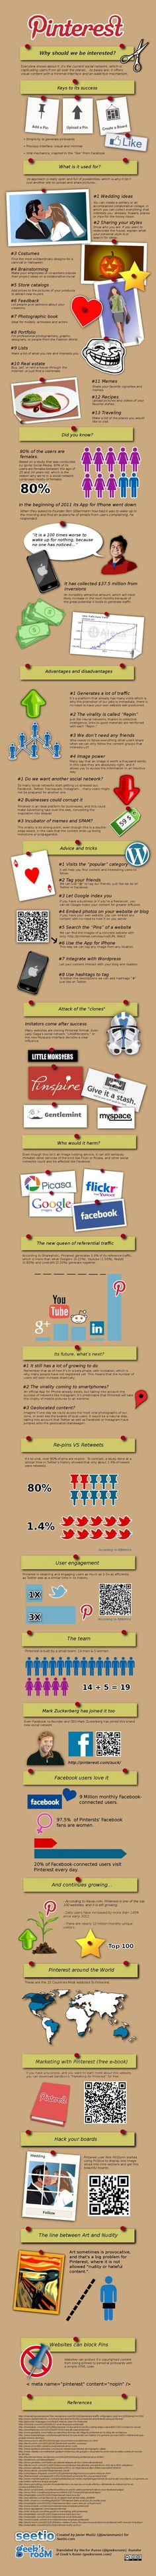 Infographics  Pinterest Why should we be ineterested?